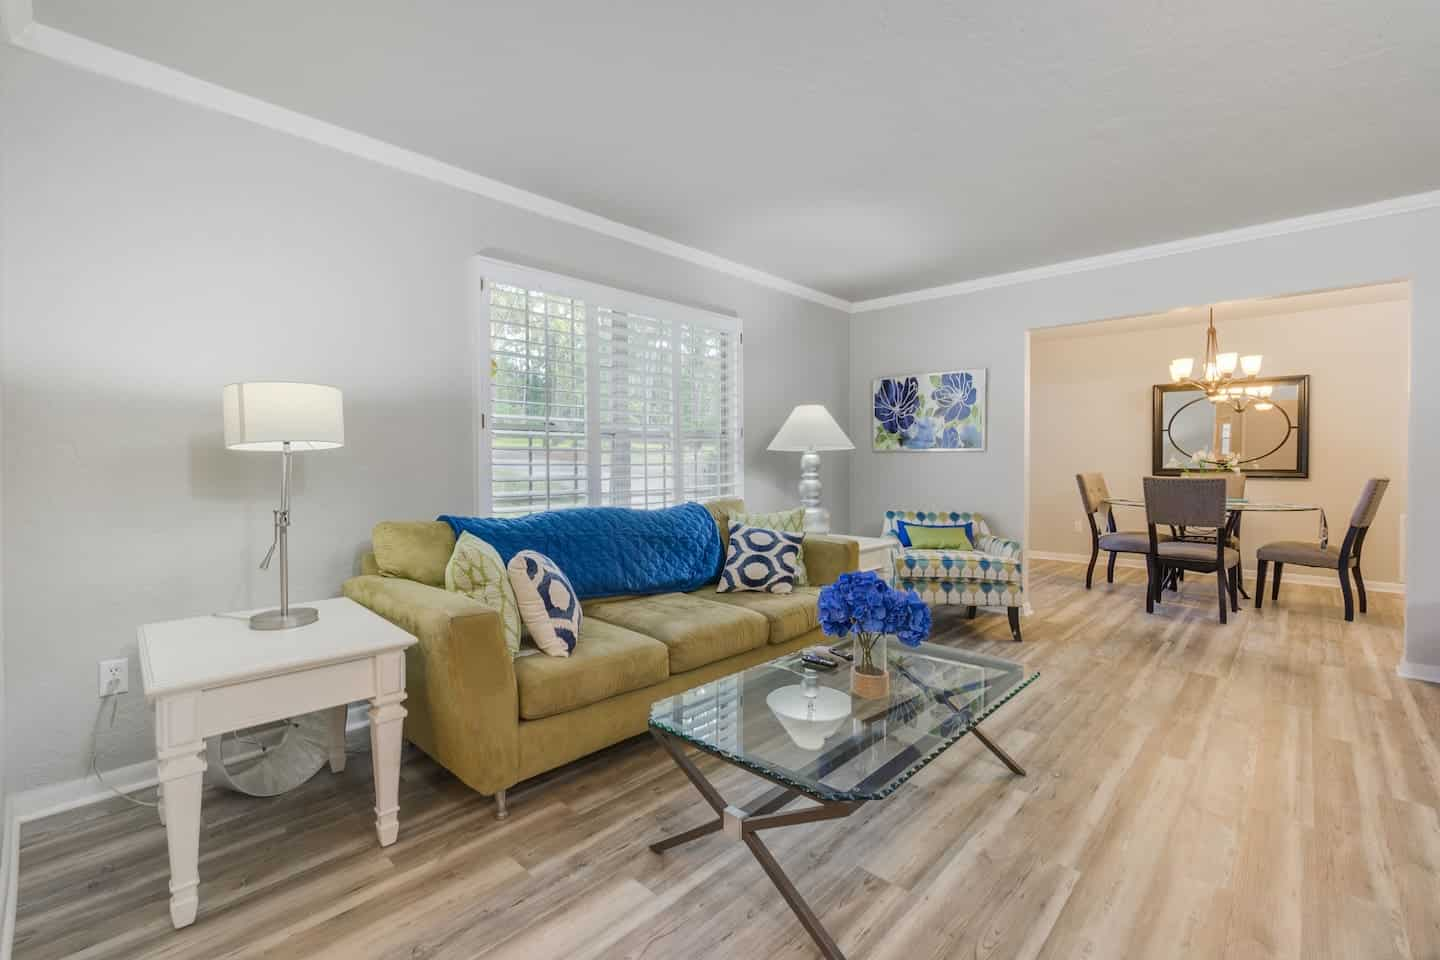 Image of Airbnb rental in Gainesville